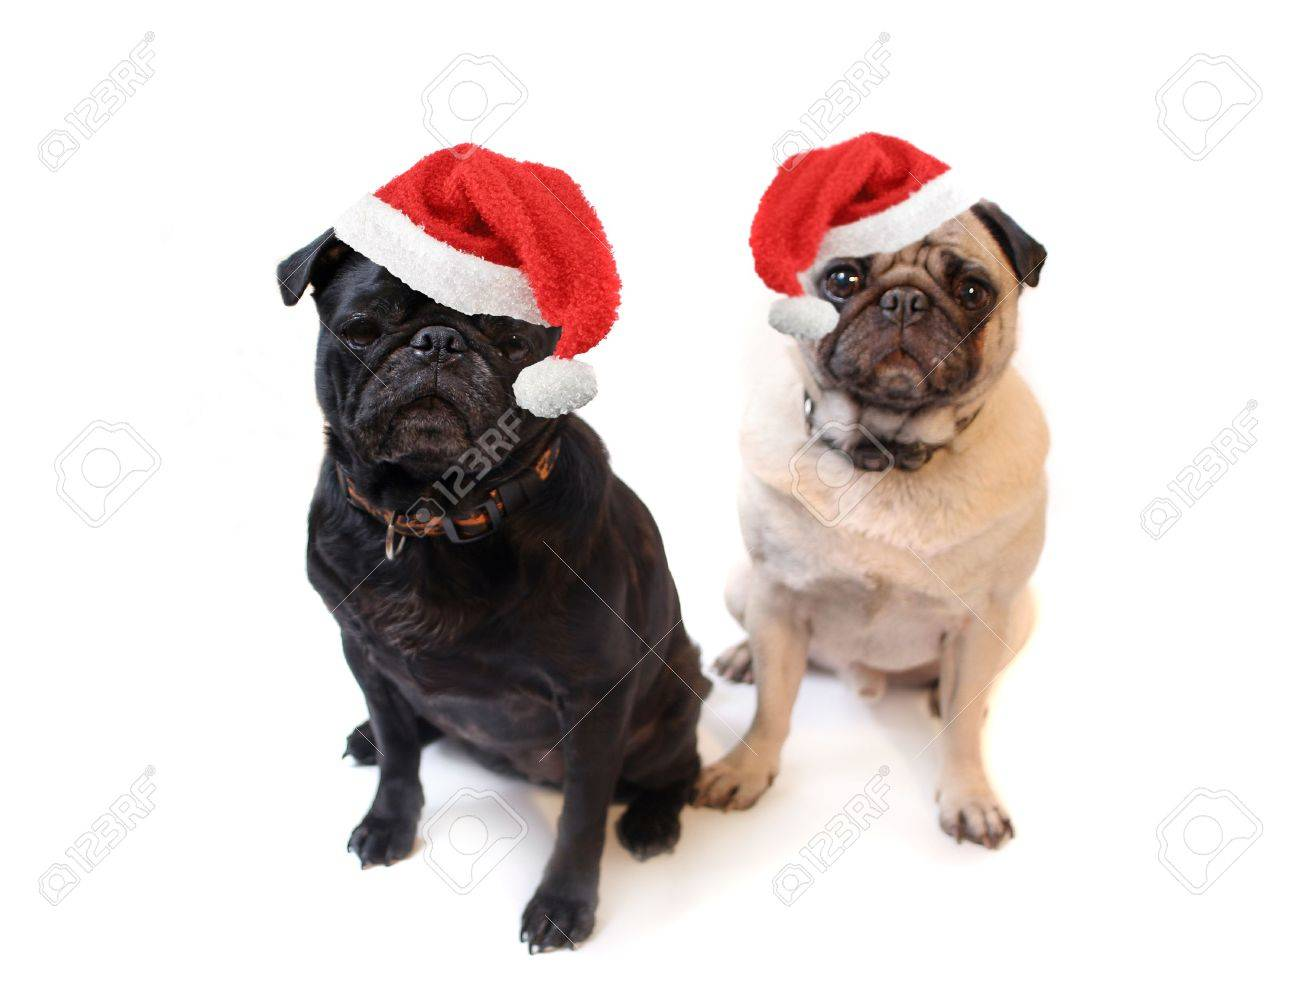 Black and Fawn colored Pugs with christmas santa claus hats   on a white background, focus on black dog's face Stock Photo - 3804490